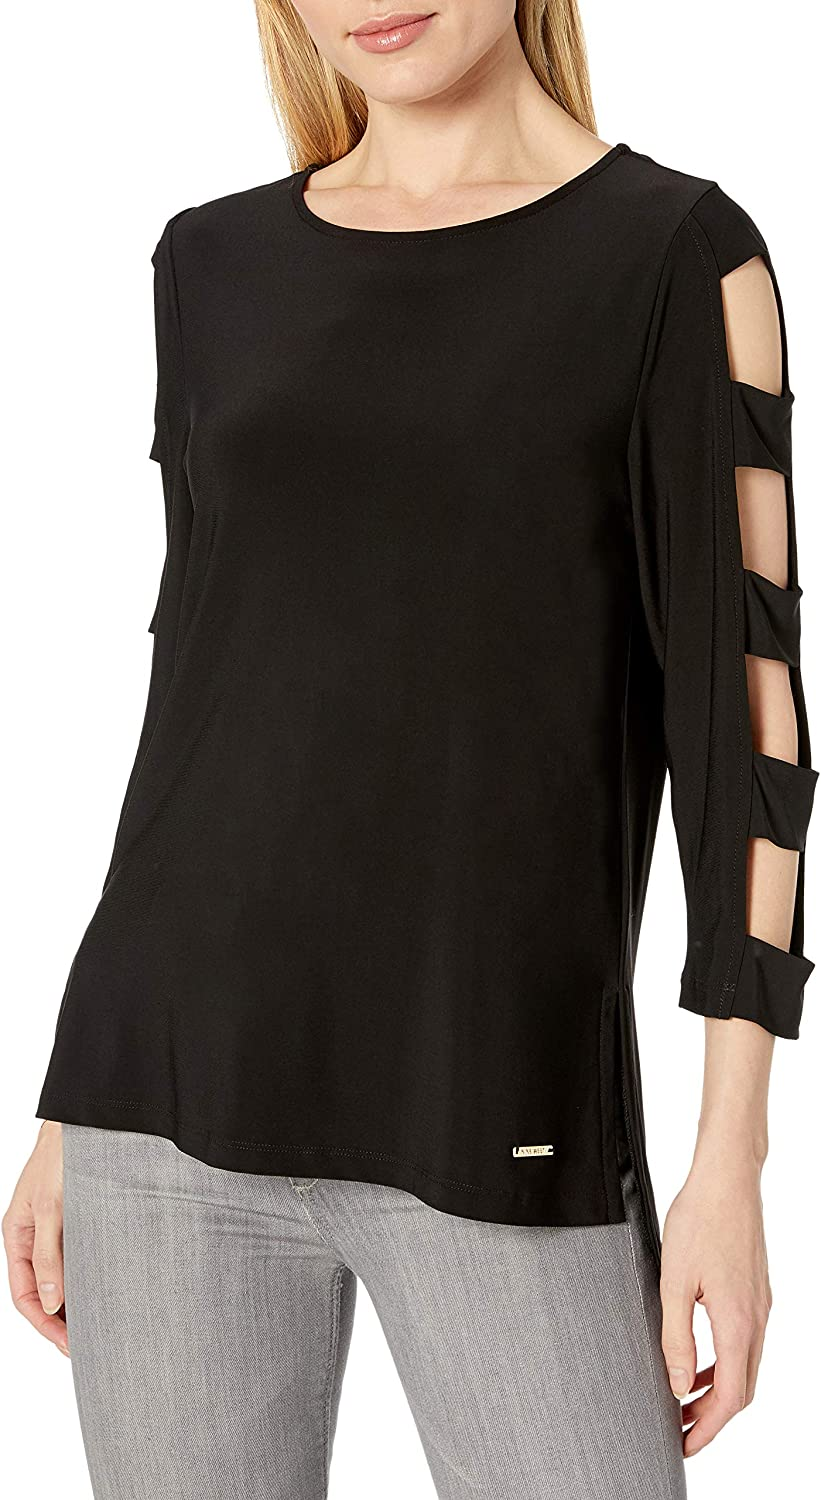 NINE WEST Womens Knit Top with Cutout Sleeves